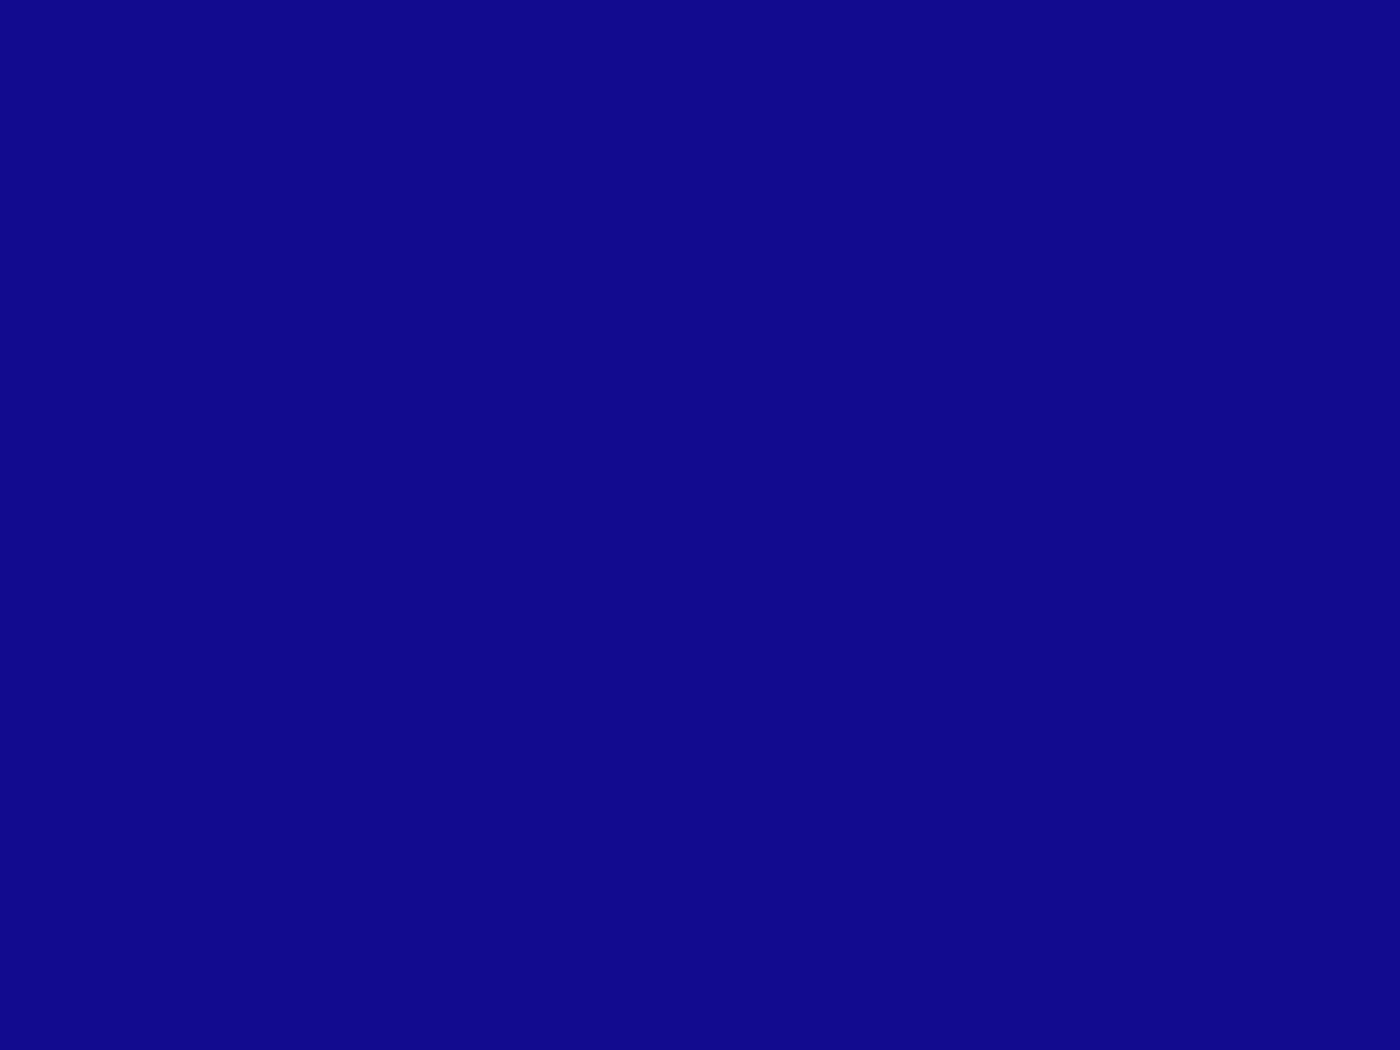 1400x1050 Ultramarine Solid Color Background